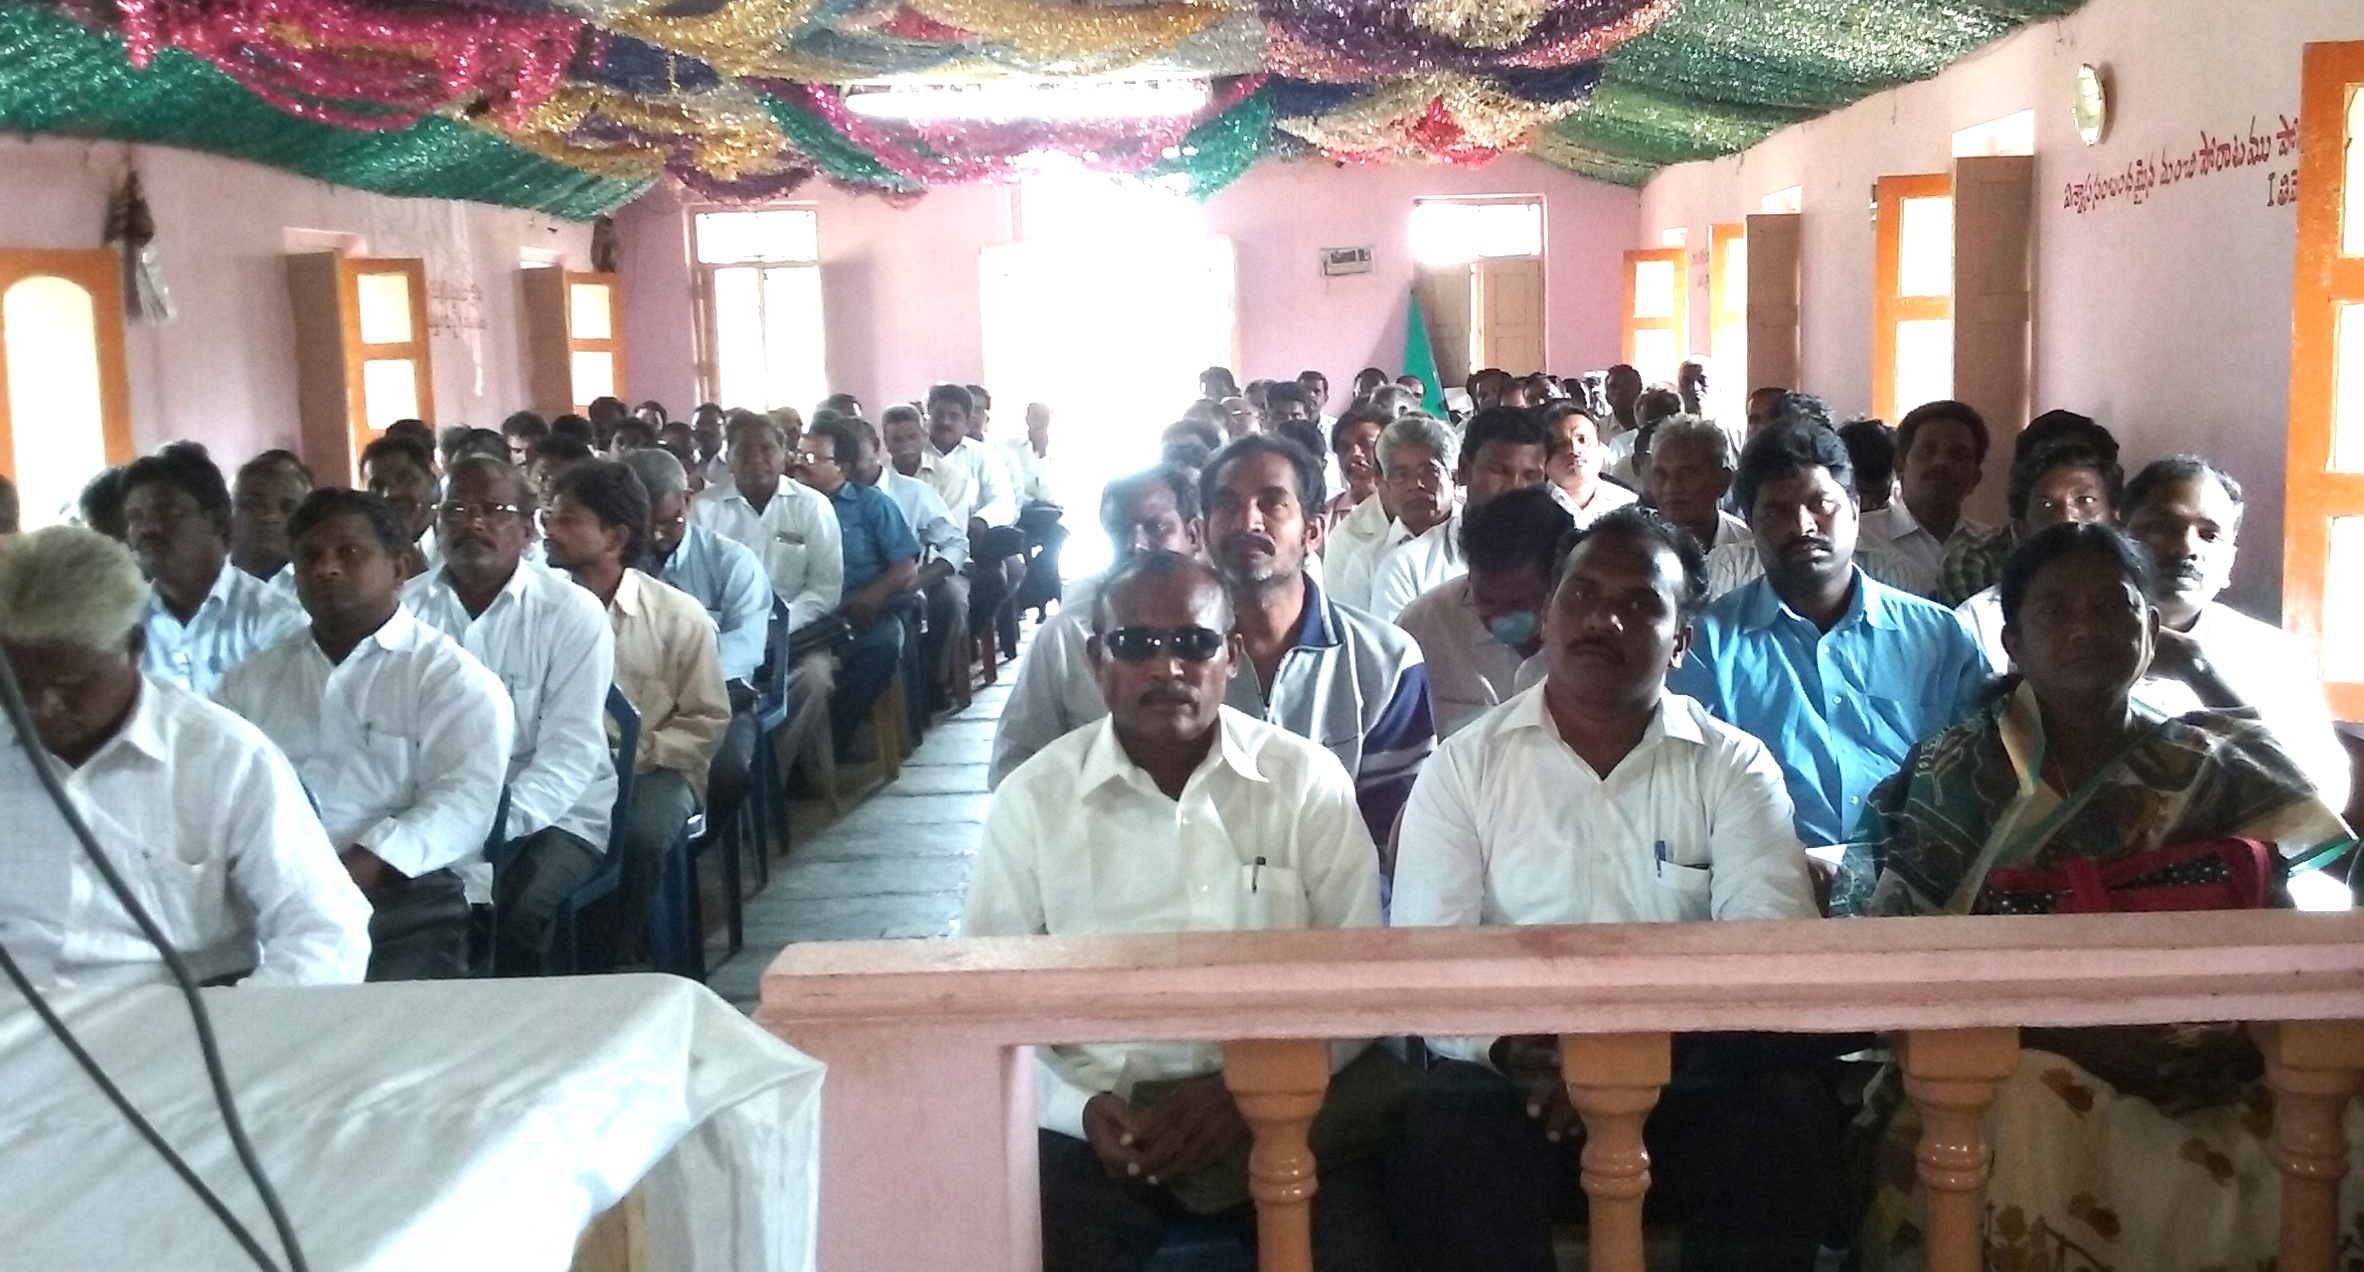 Crusade planning meeting in South Asia